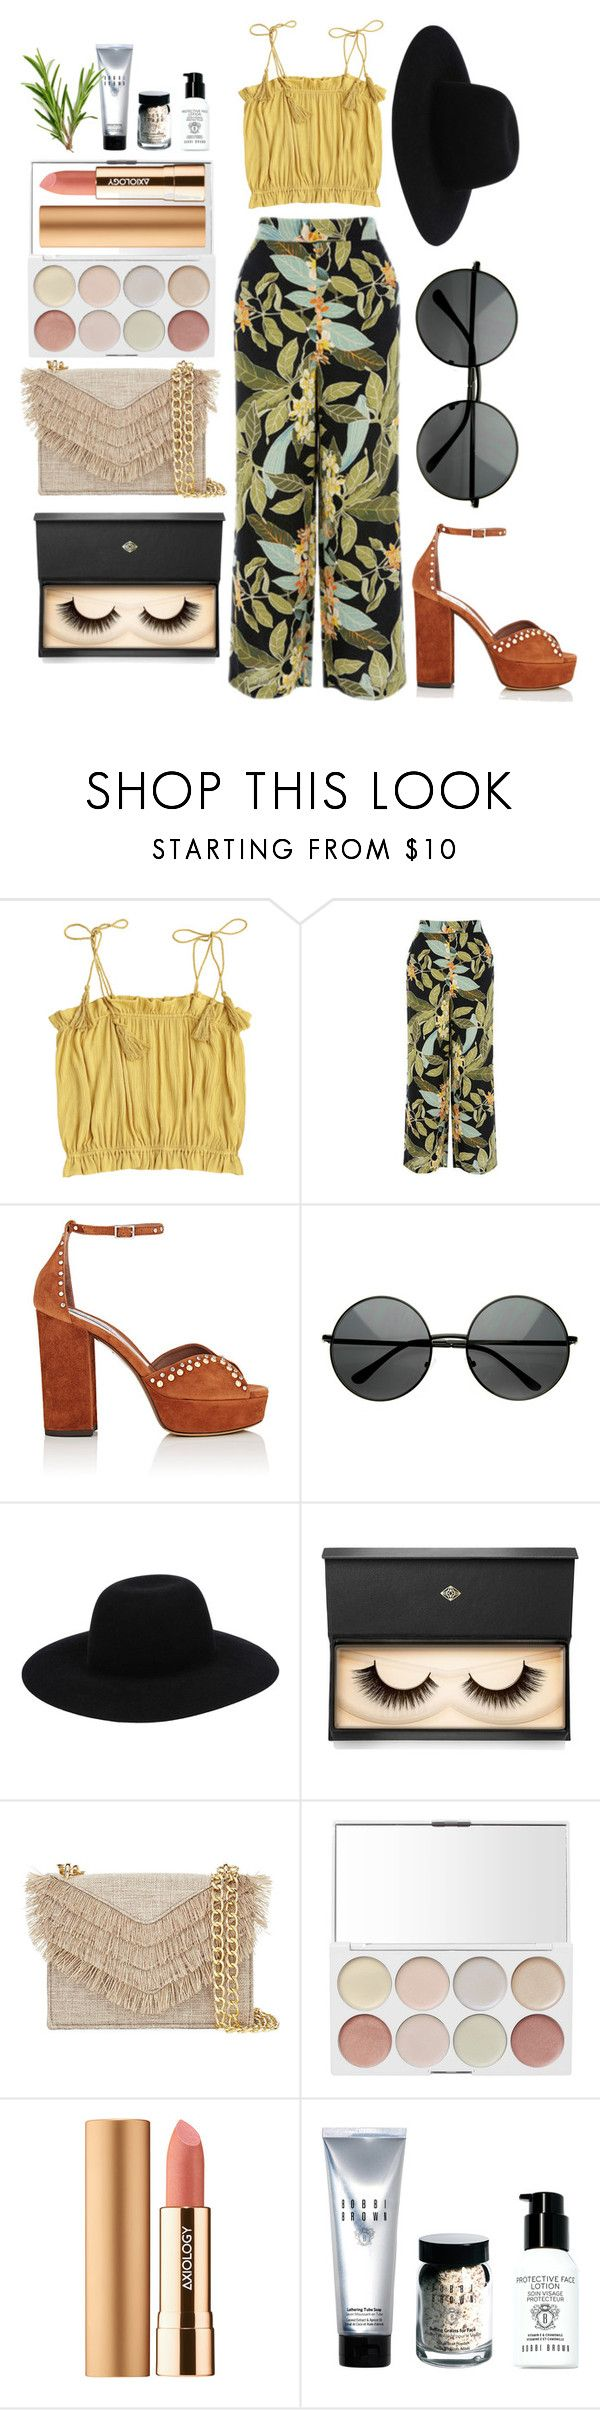 """""""Contest//sleeveless top"""" by eva-l118 ❤ liked on Polyvore featuring Warehouse, Tabitha Simmons, Off-White, Lash Star Beauty, Cynthia Rowley, Axiology and Bobbi Brown Cosmetics"""